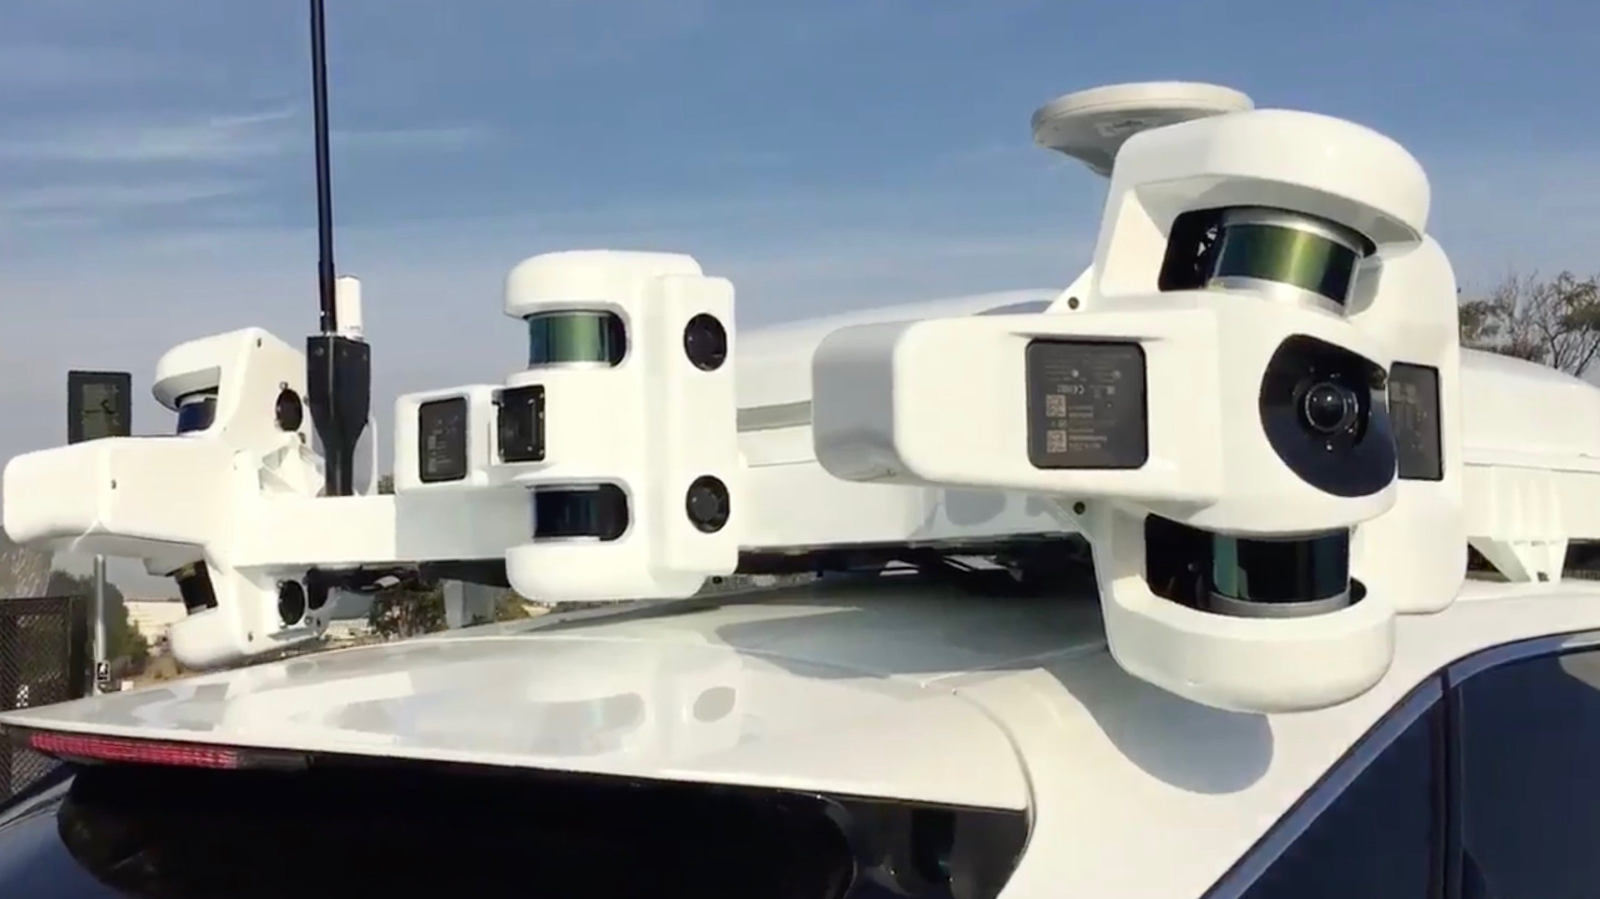 Apple increases the size of its team responsible for testing self-driving cars in California